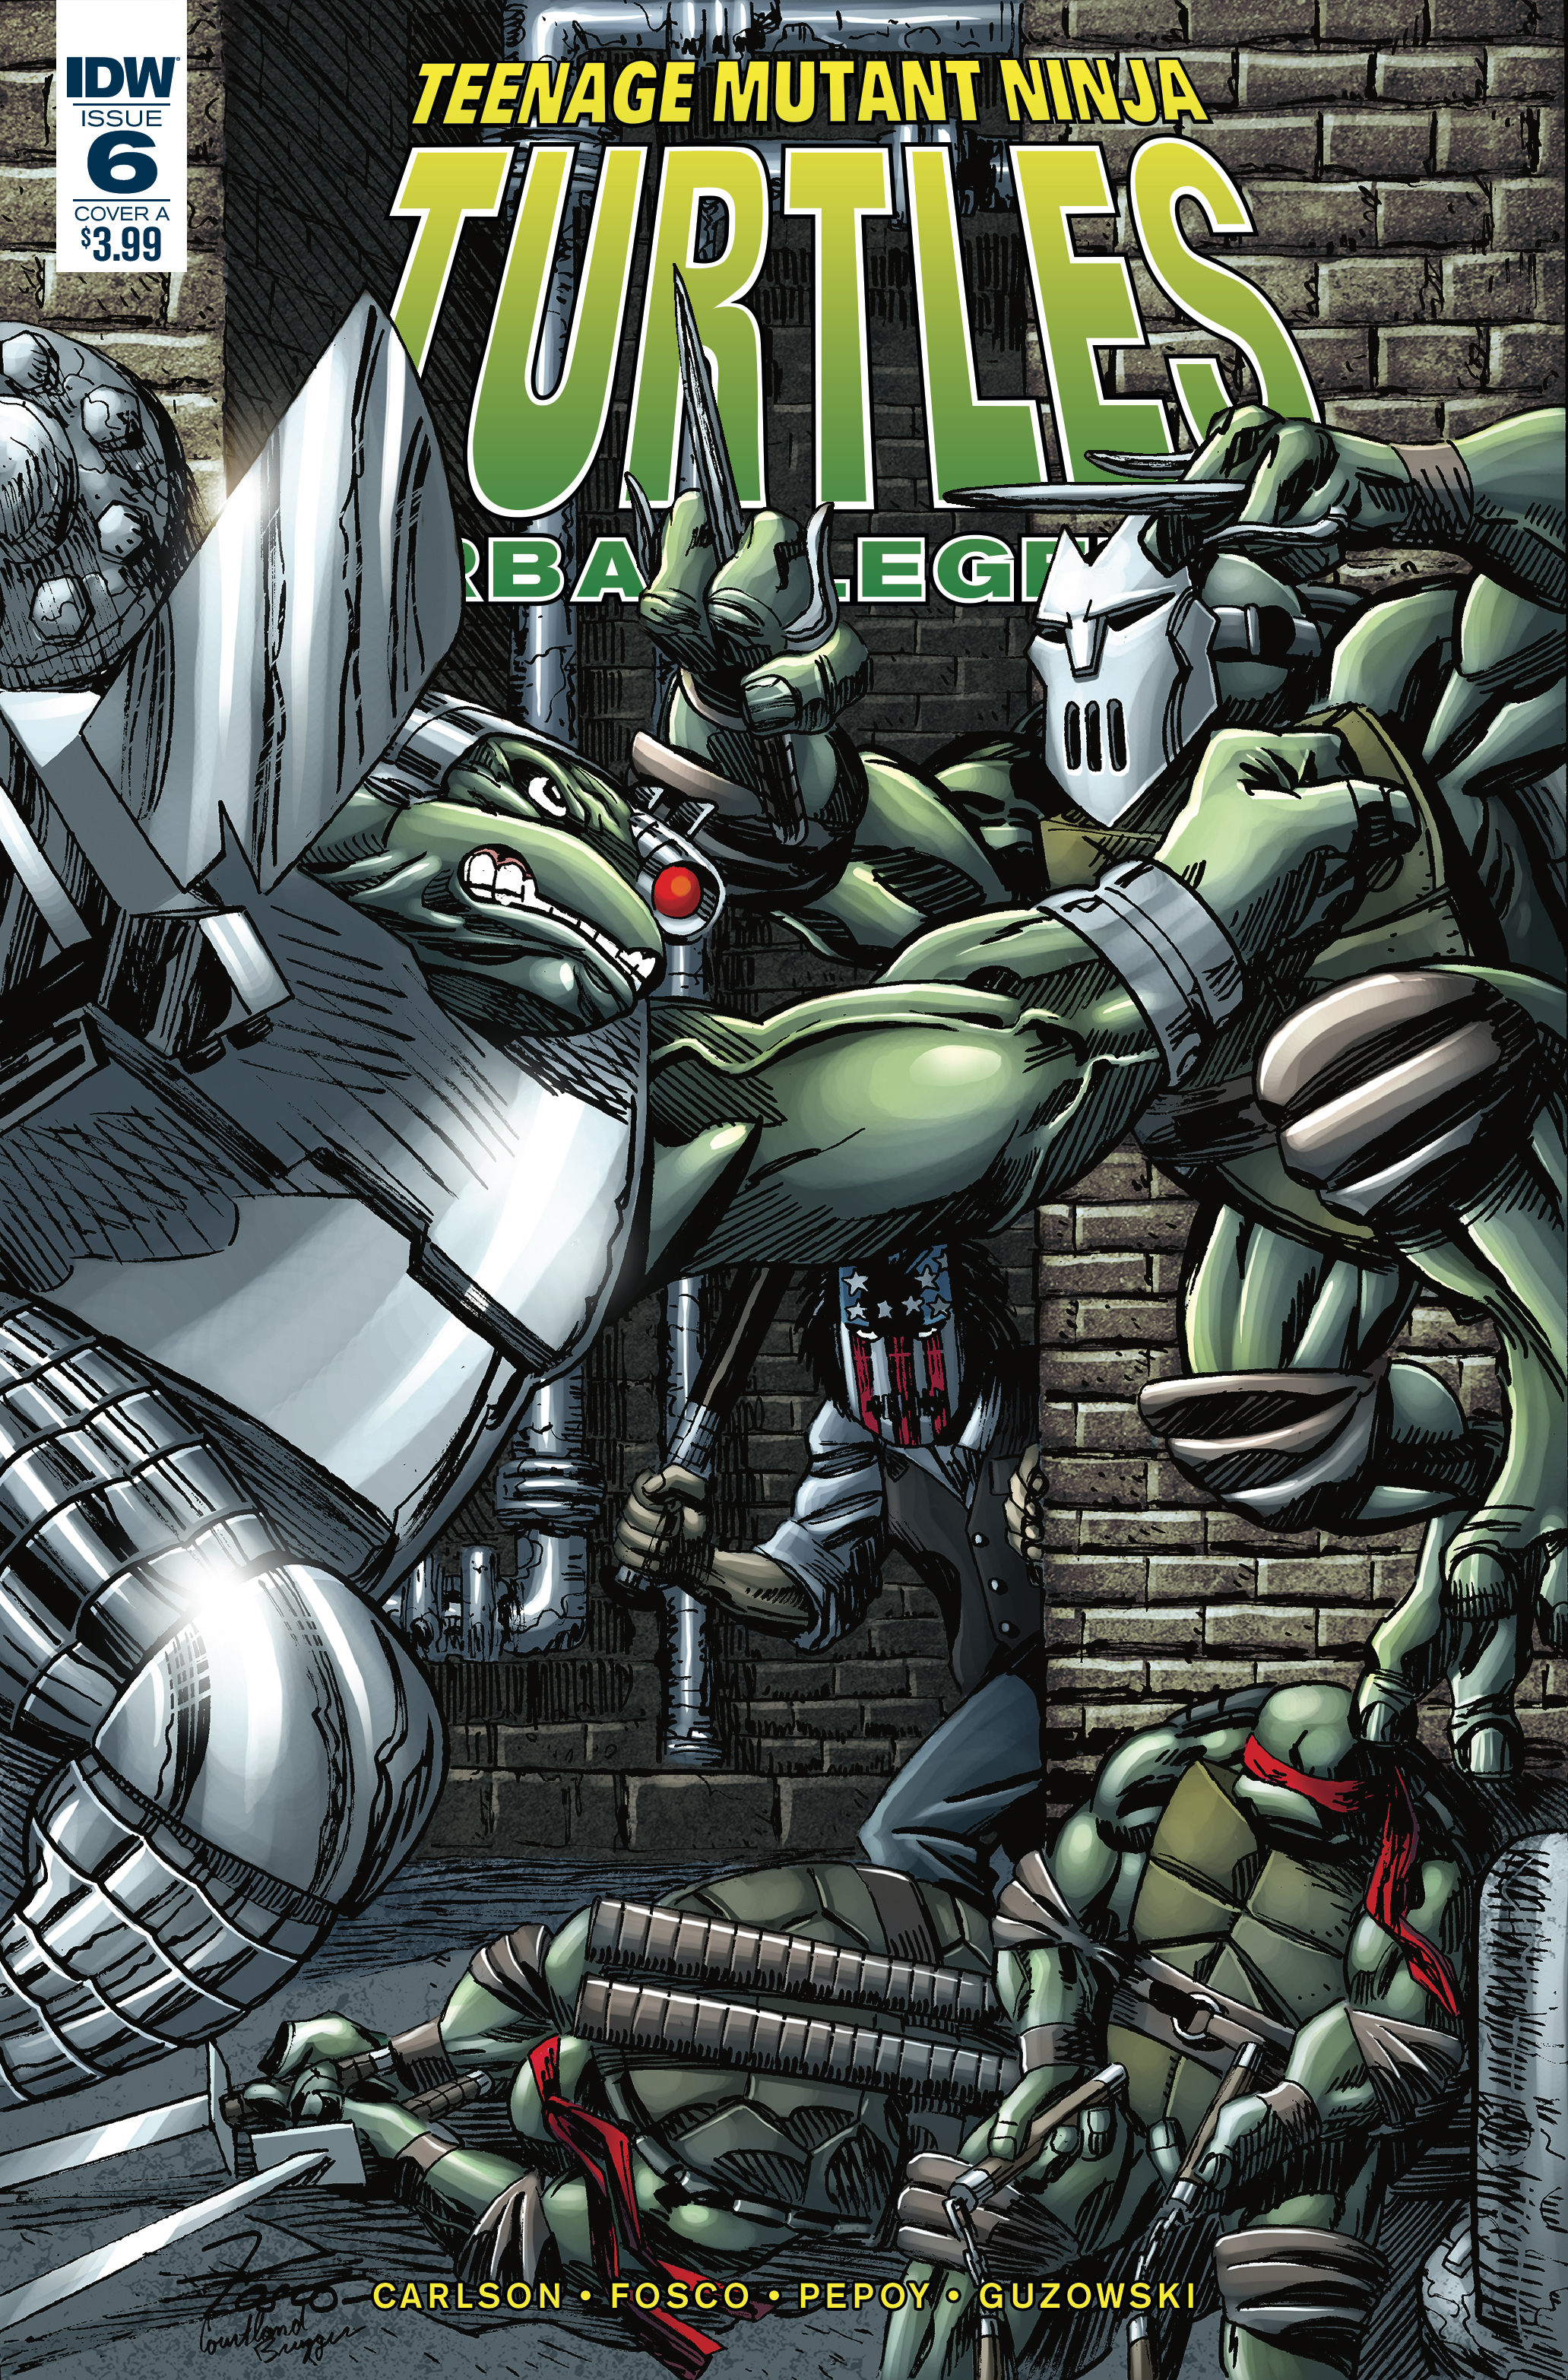 TMNT URBAN LEGENDS #6 CVR A FOSCO